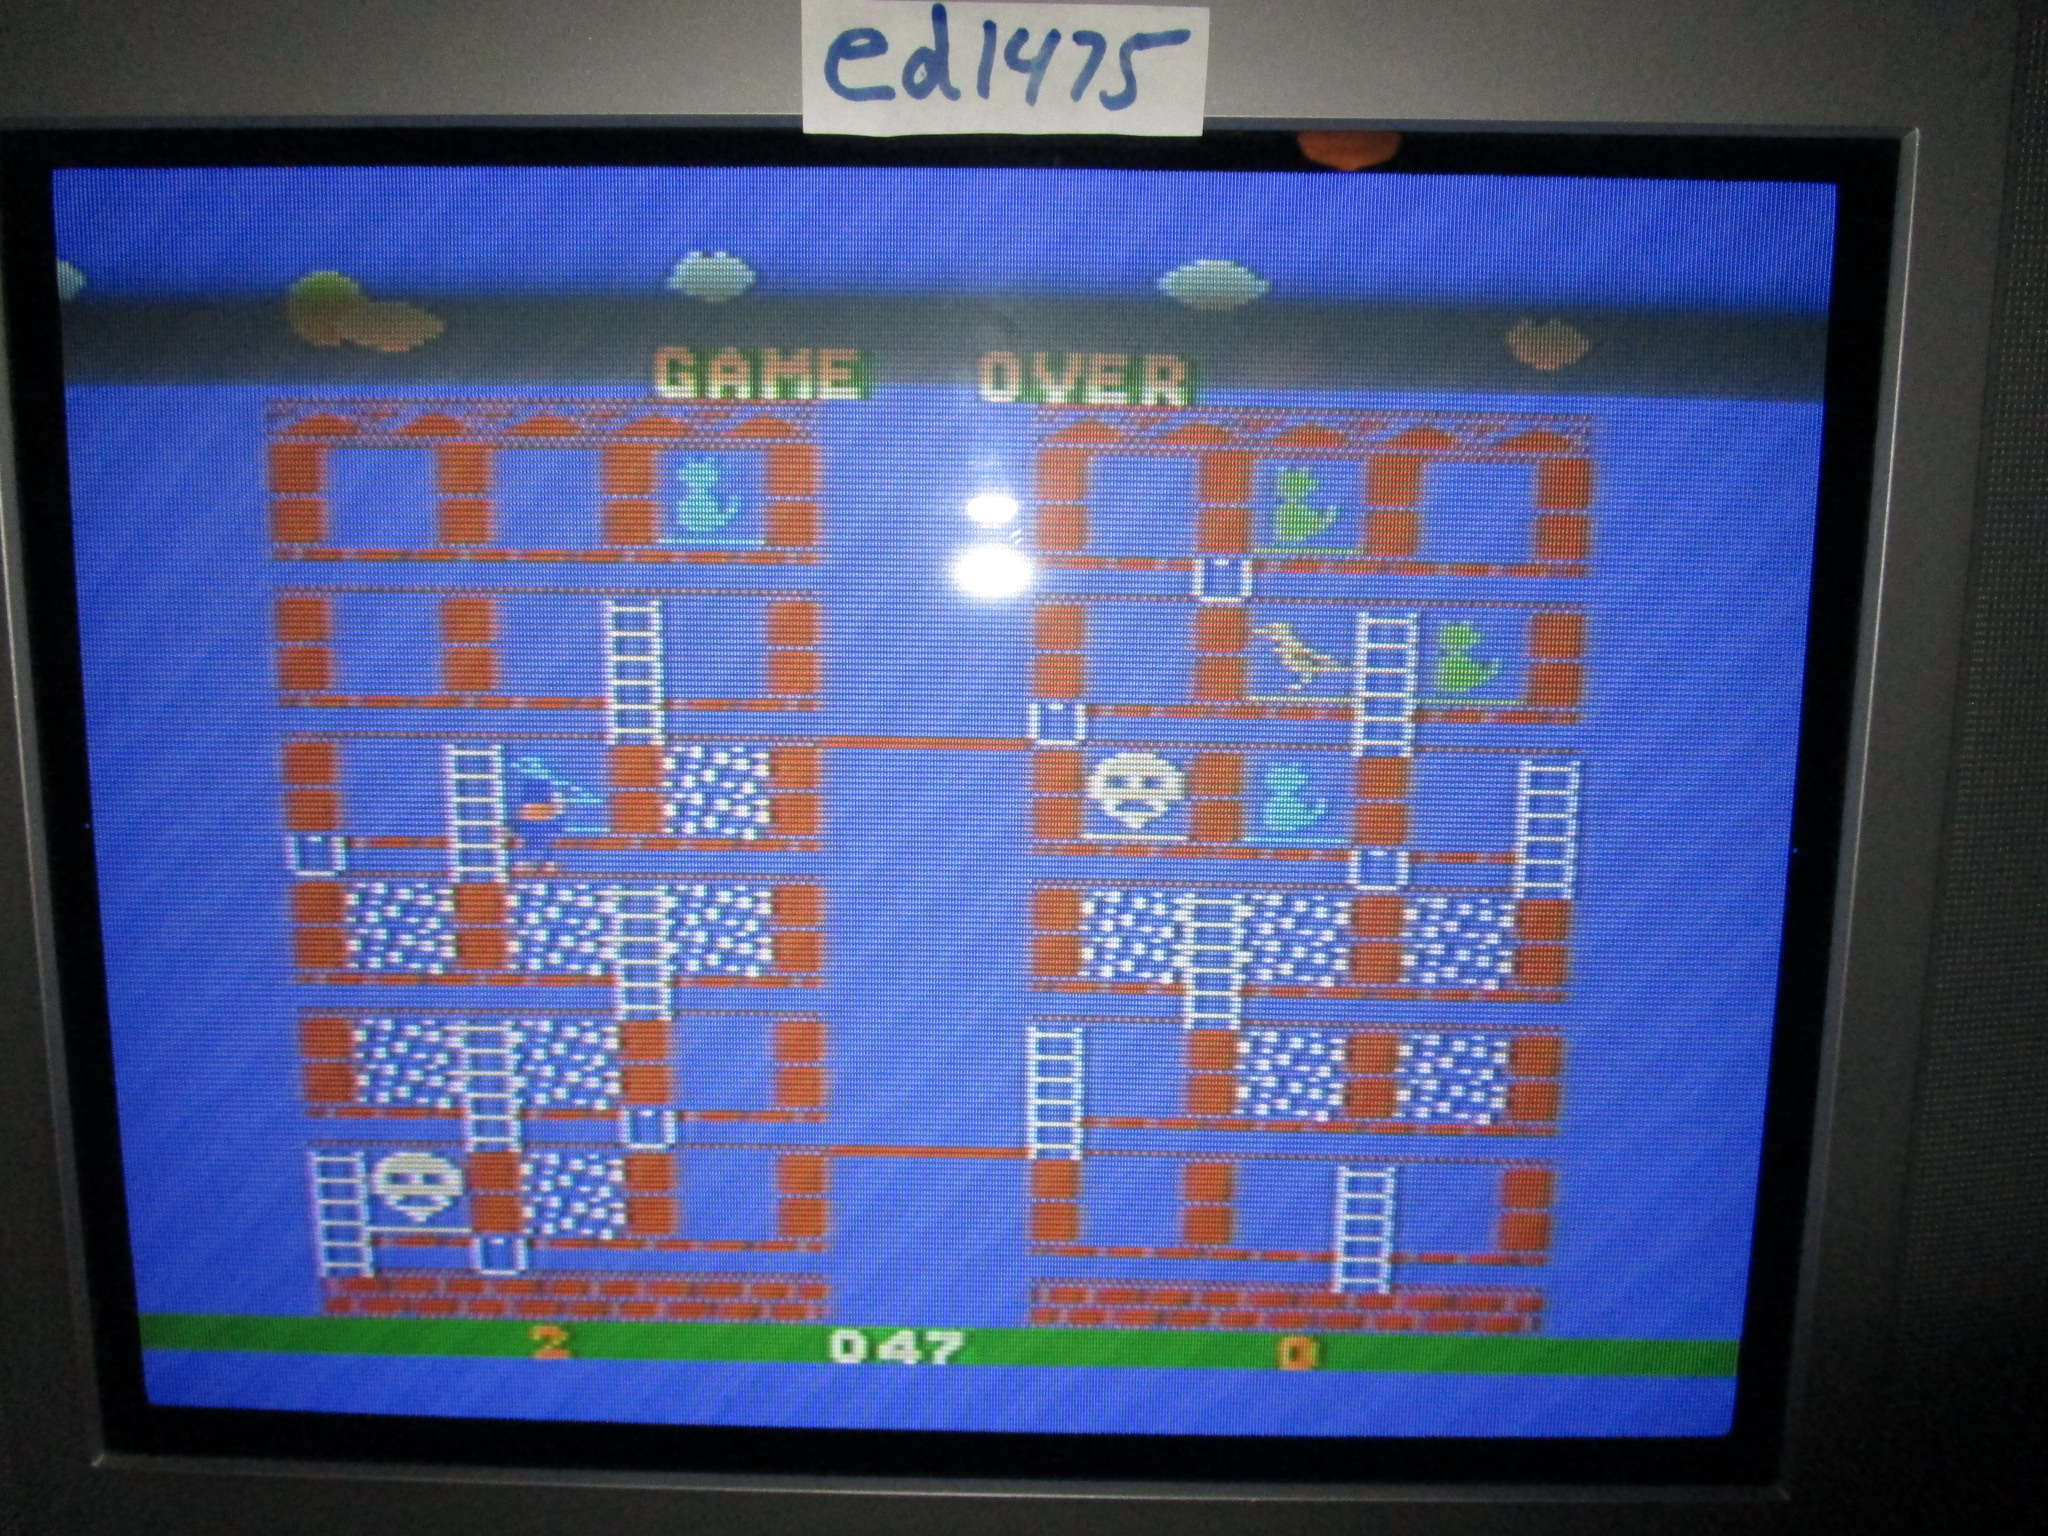 ed1475: Memory Manor: Level 1 (Colecovision) 47 points on 2015-01-18 11:04:25